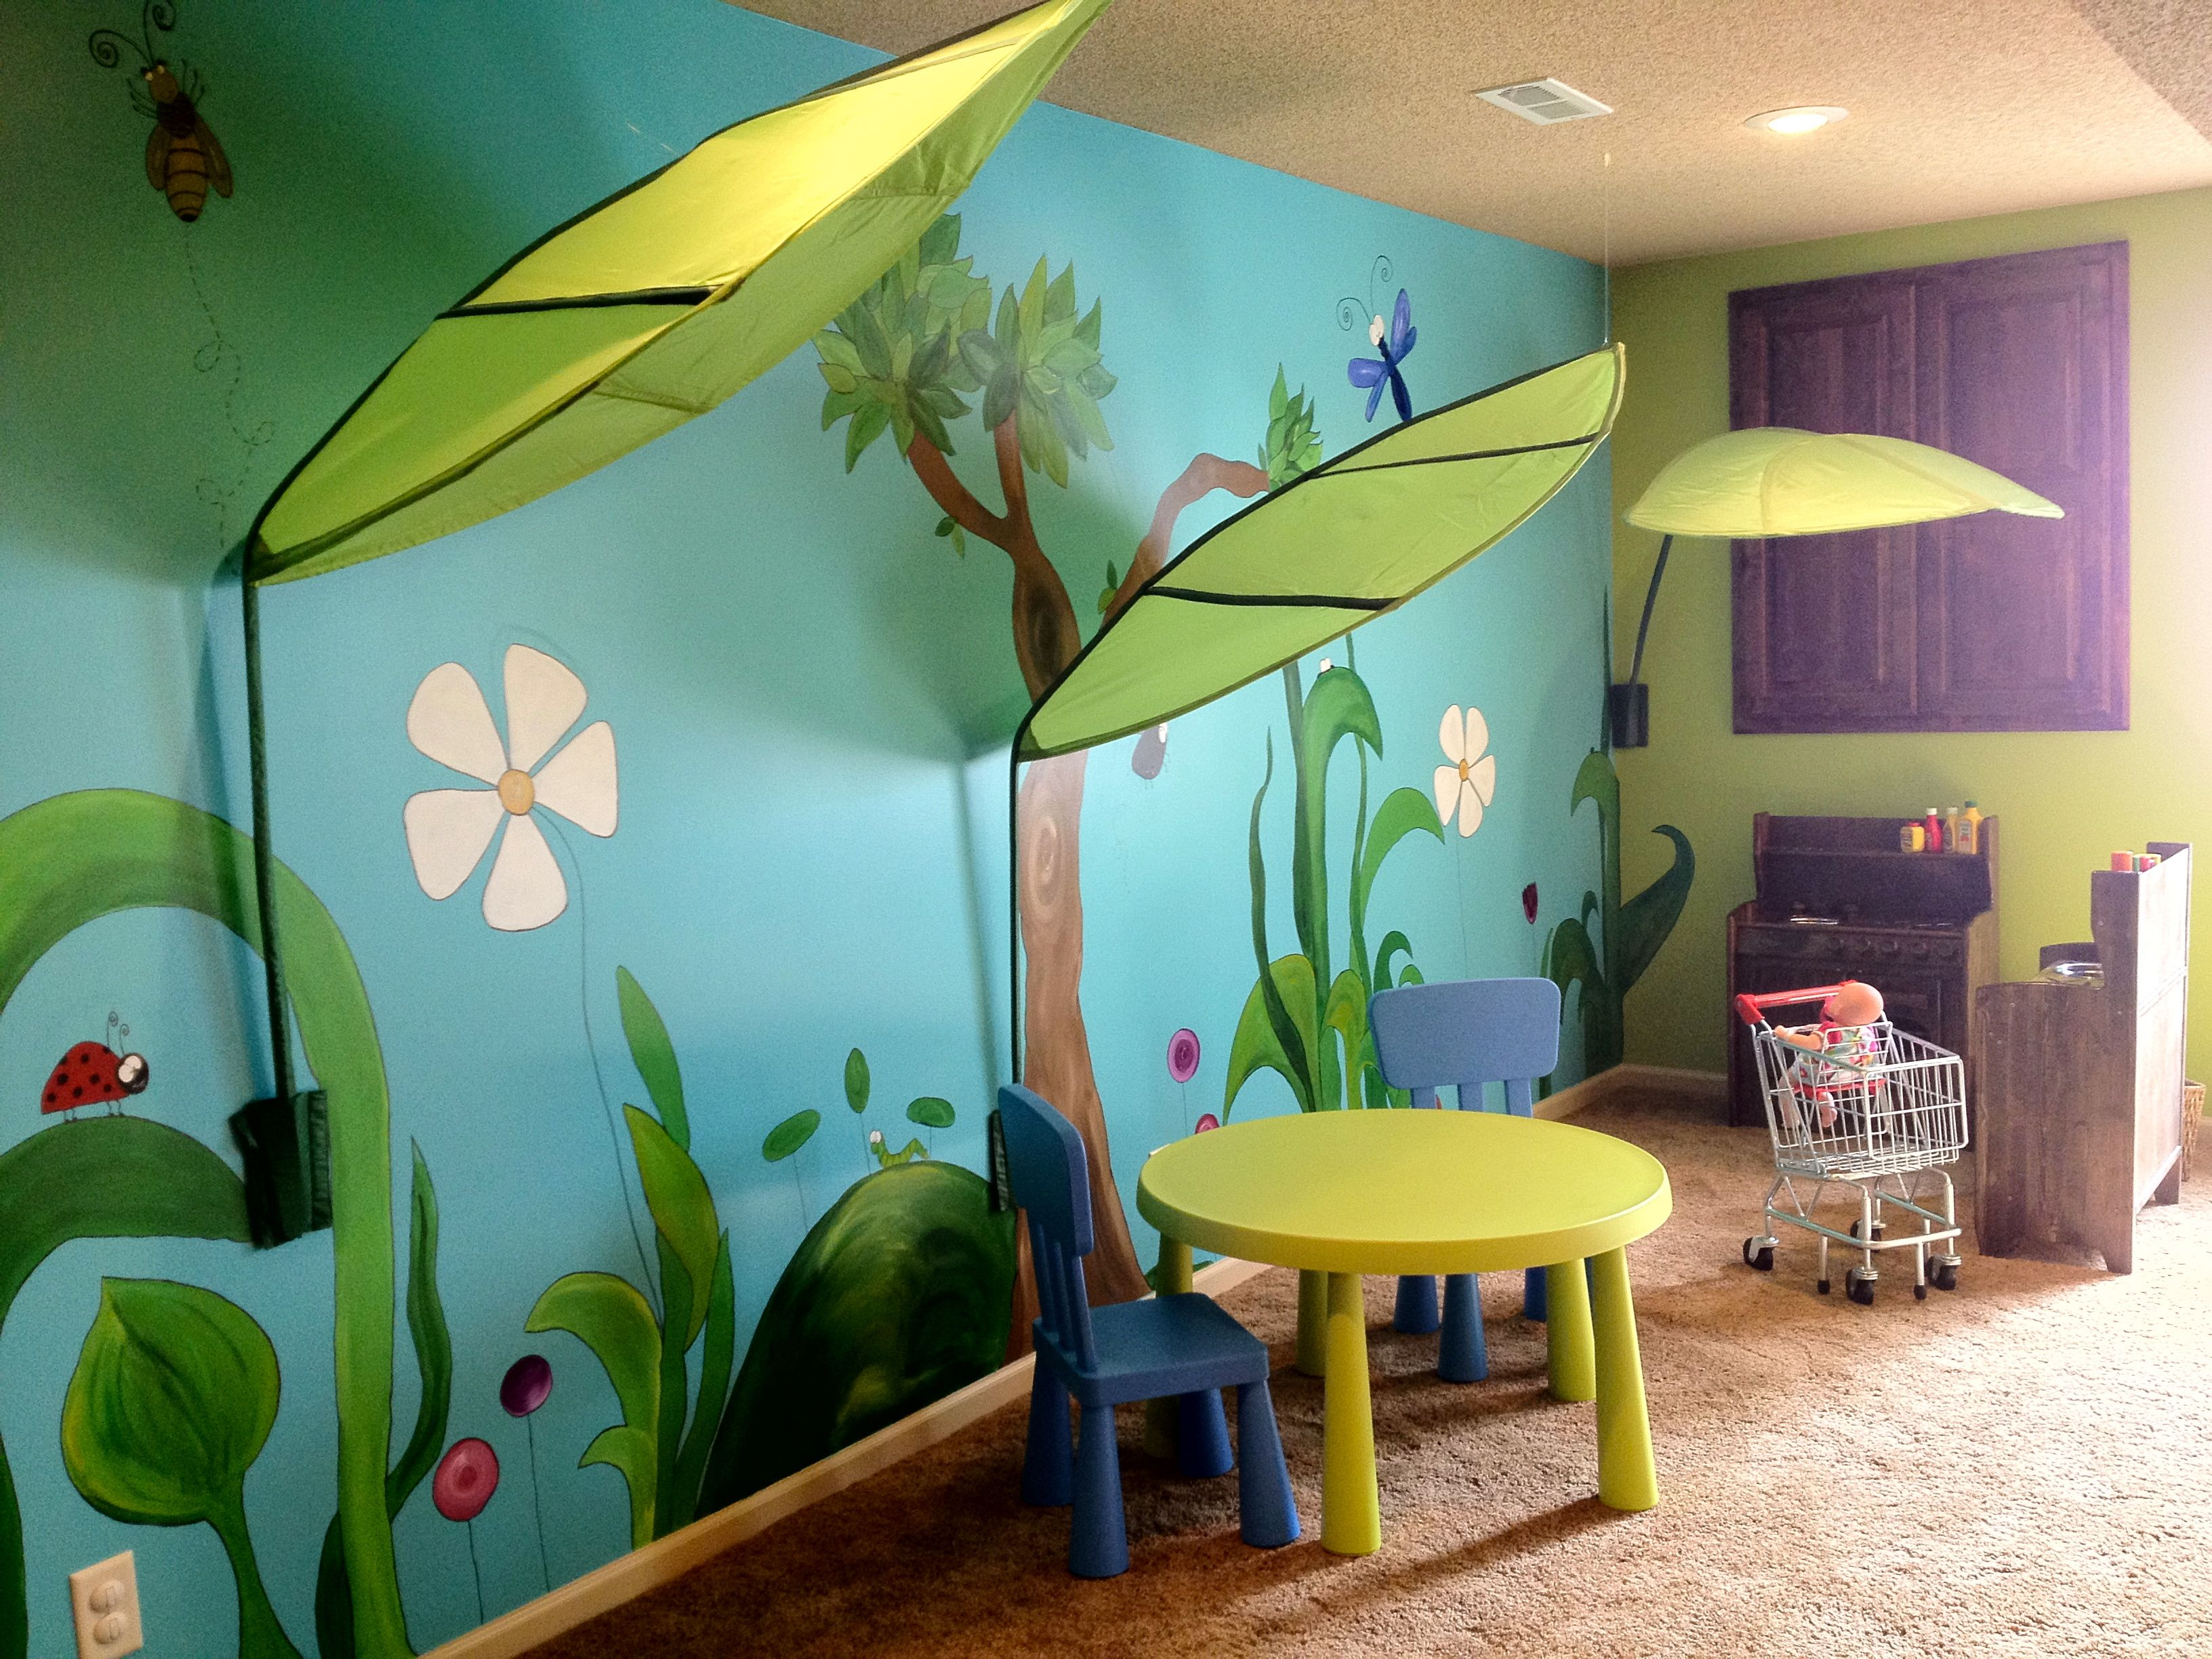 Home Daycare Design Ideas: Pin By Maegan Yust On DIY Crafts